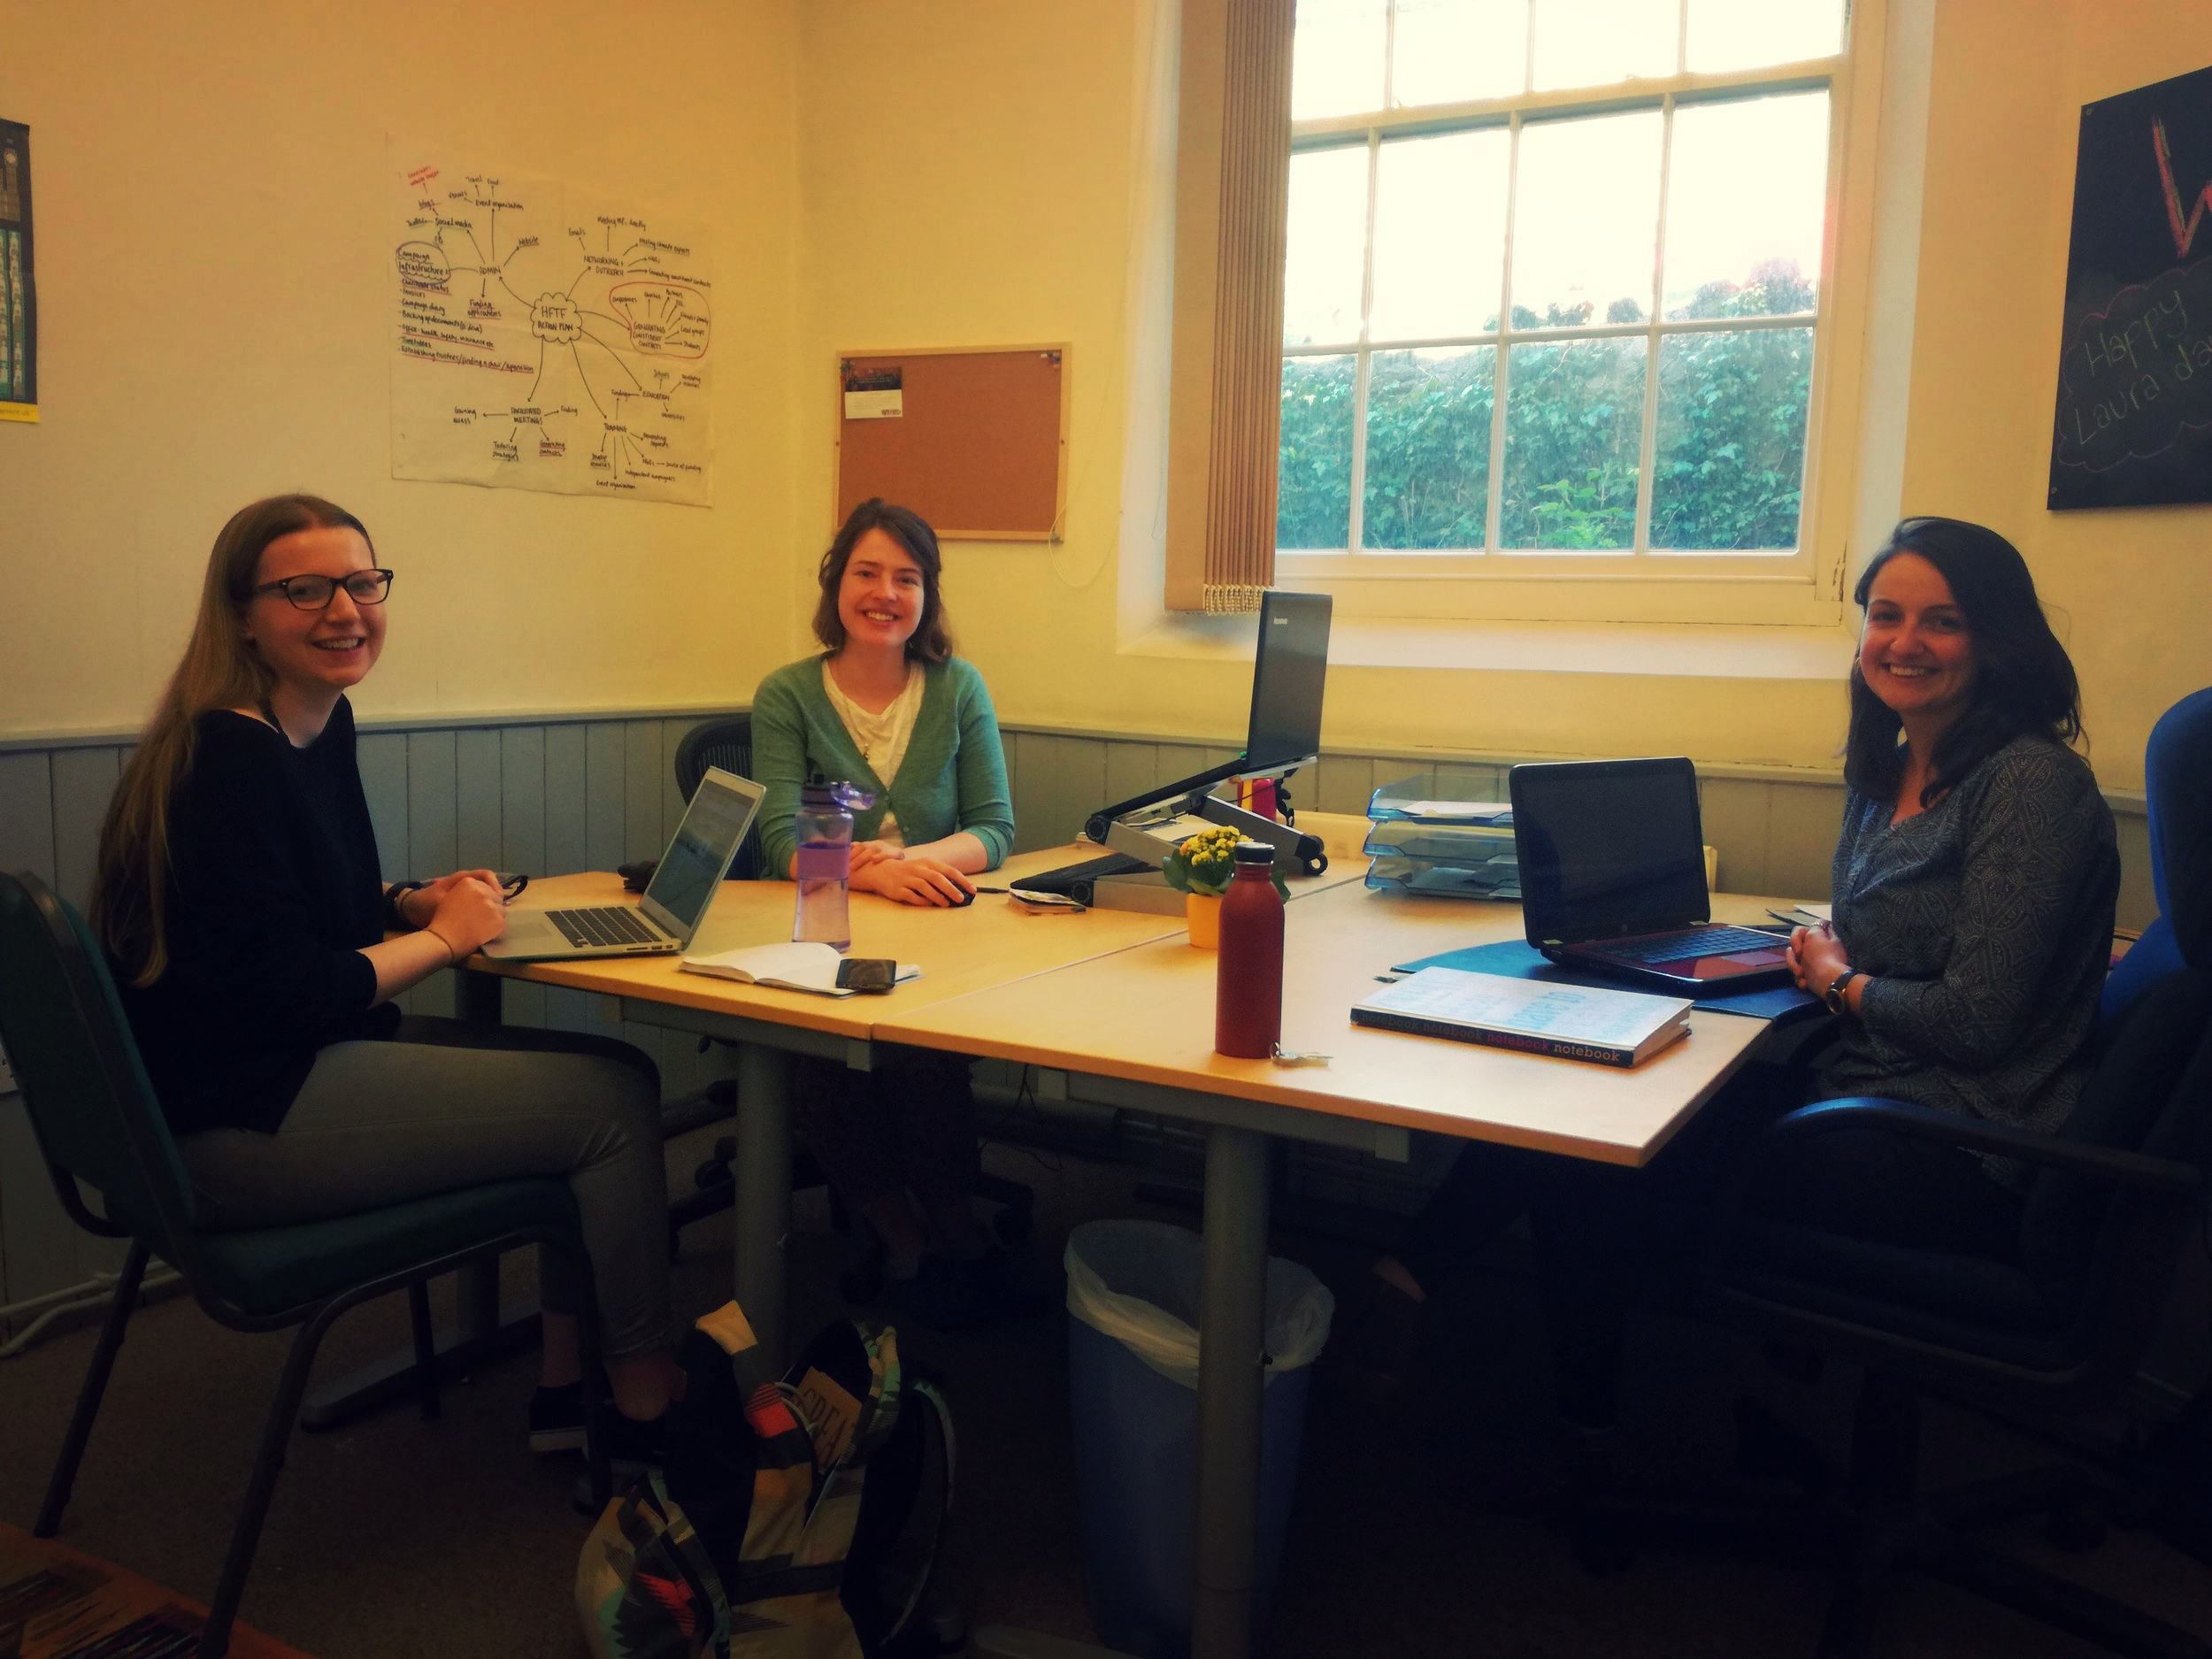 Laura, Jo and Sarah in the new office